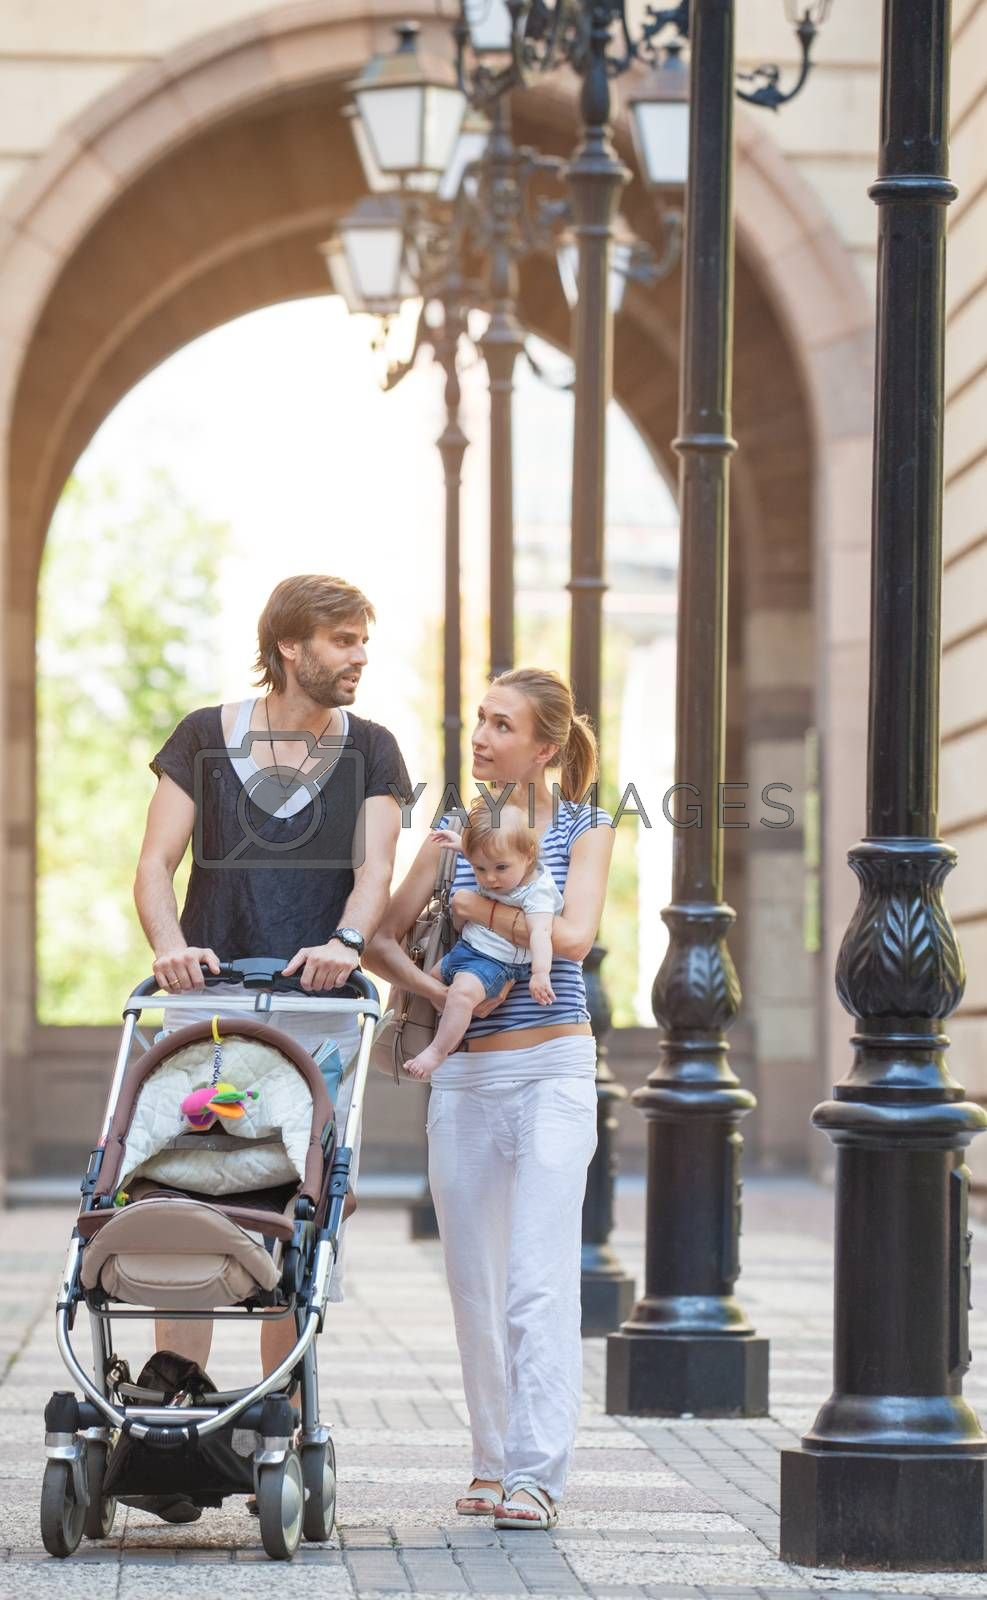 A young gorgeous couple is taking a walk in European city environment during summer time.